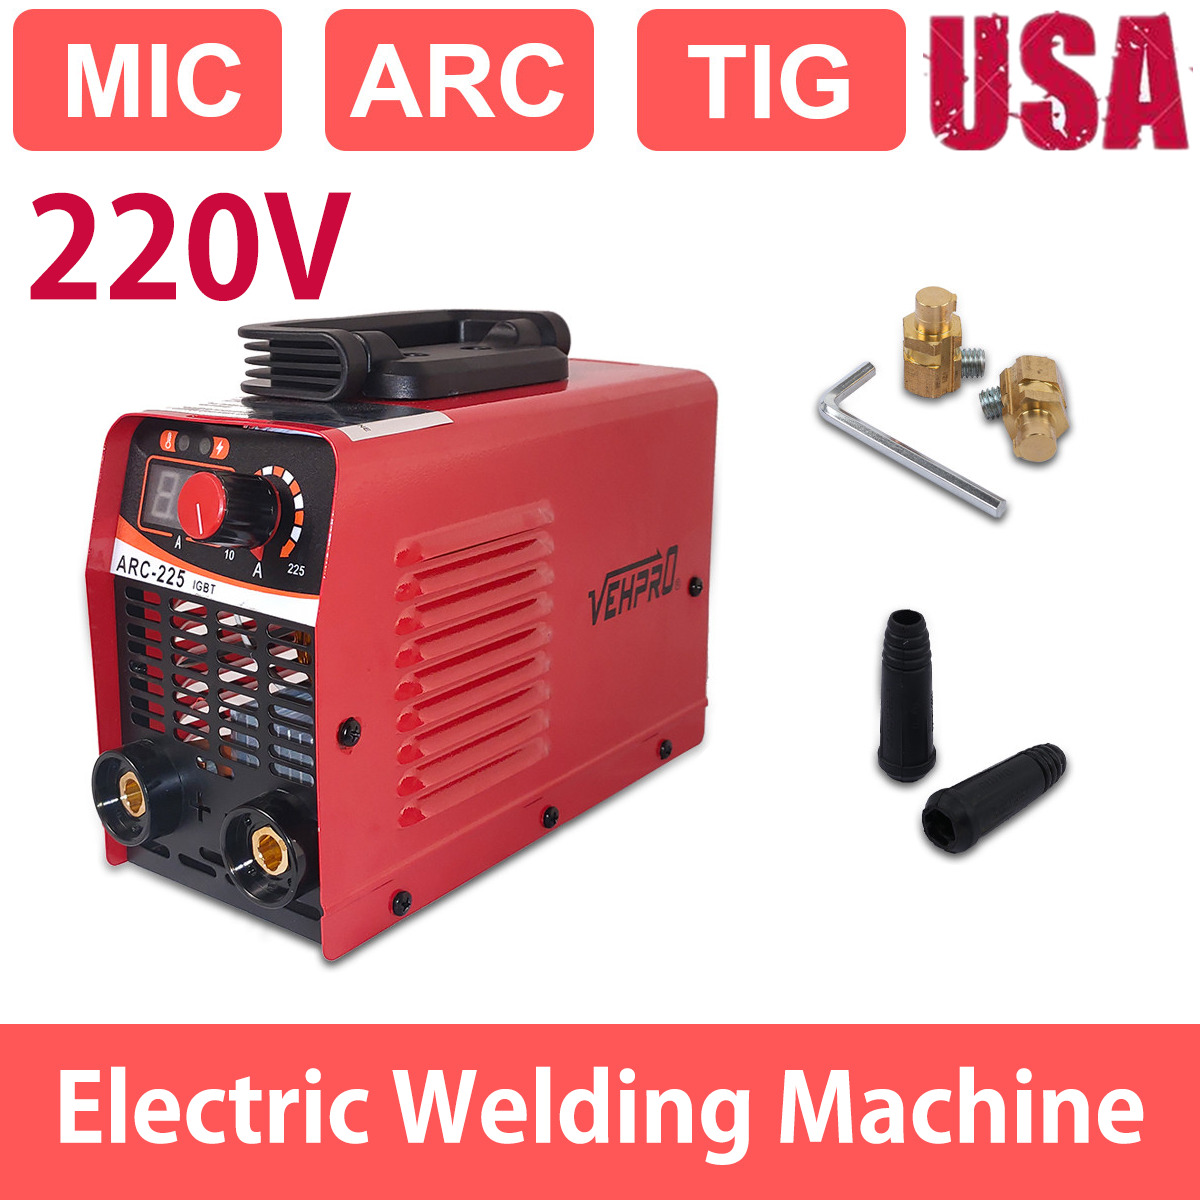 Welder Gas Less F-lux Core Wire Automatic Feed Welding Machine ARC-225. Available Now for 82.98